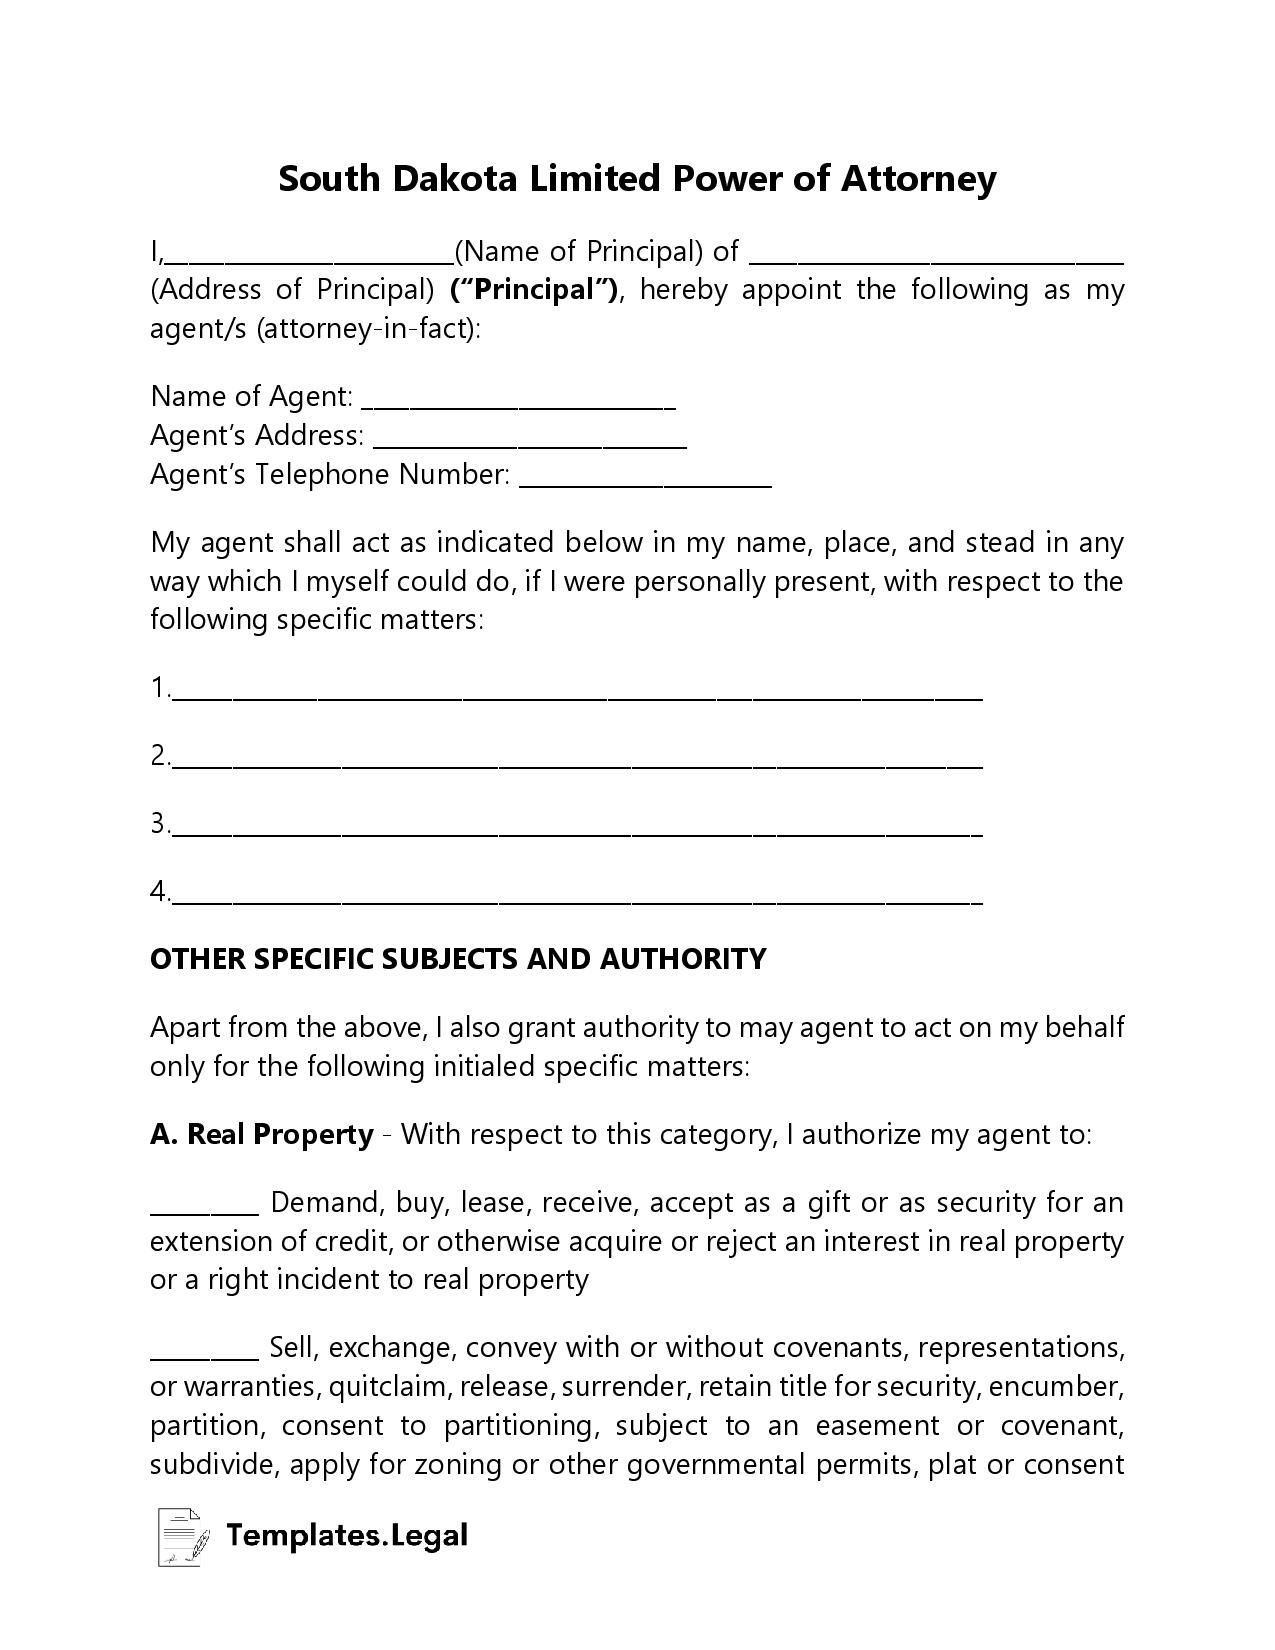 South Dakota Limited Power of Attorney - Templates.Legal